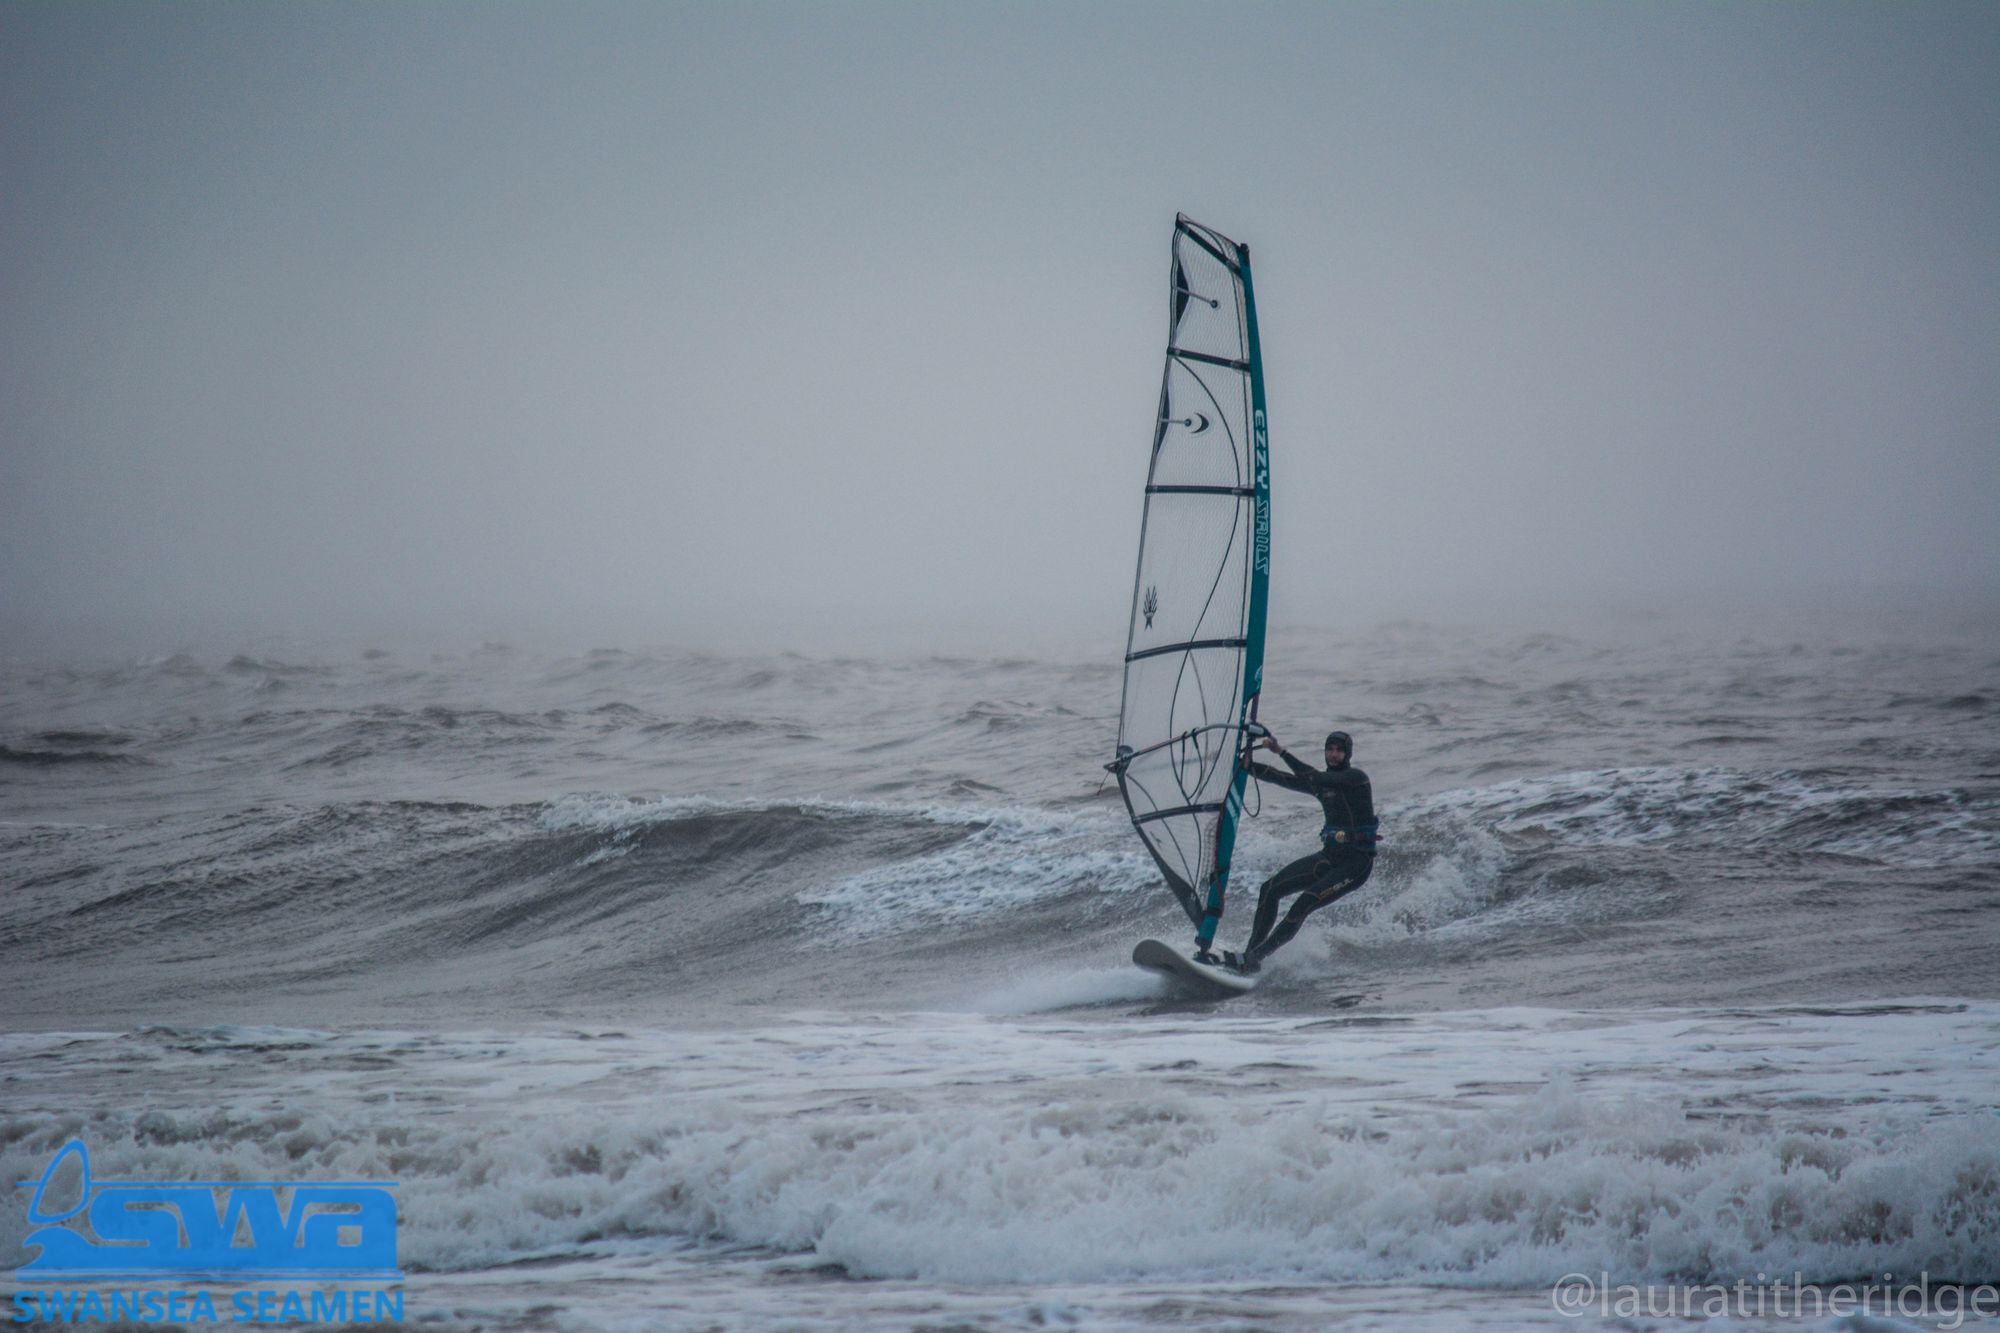 saturday windsurfing!